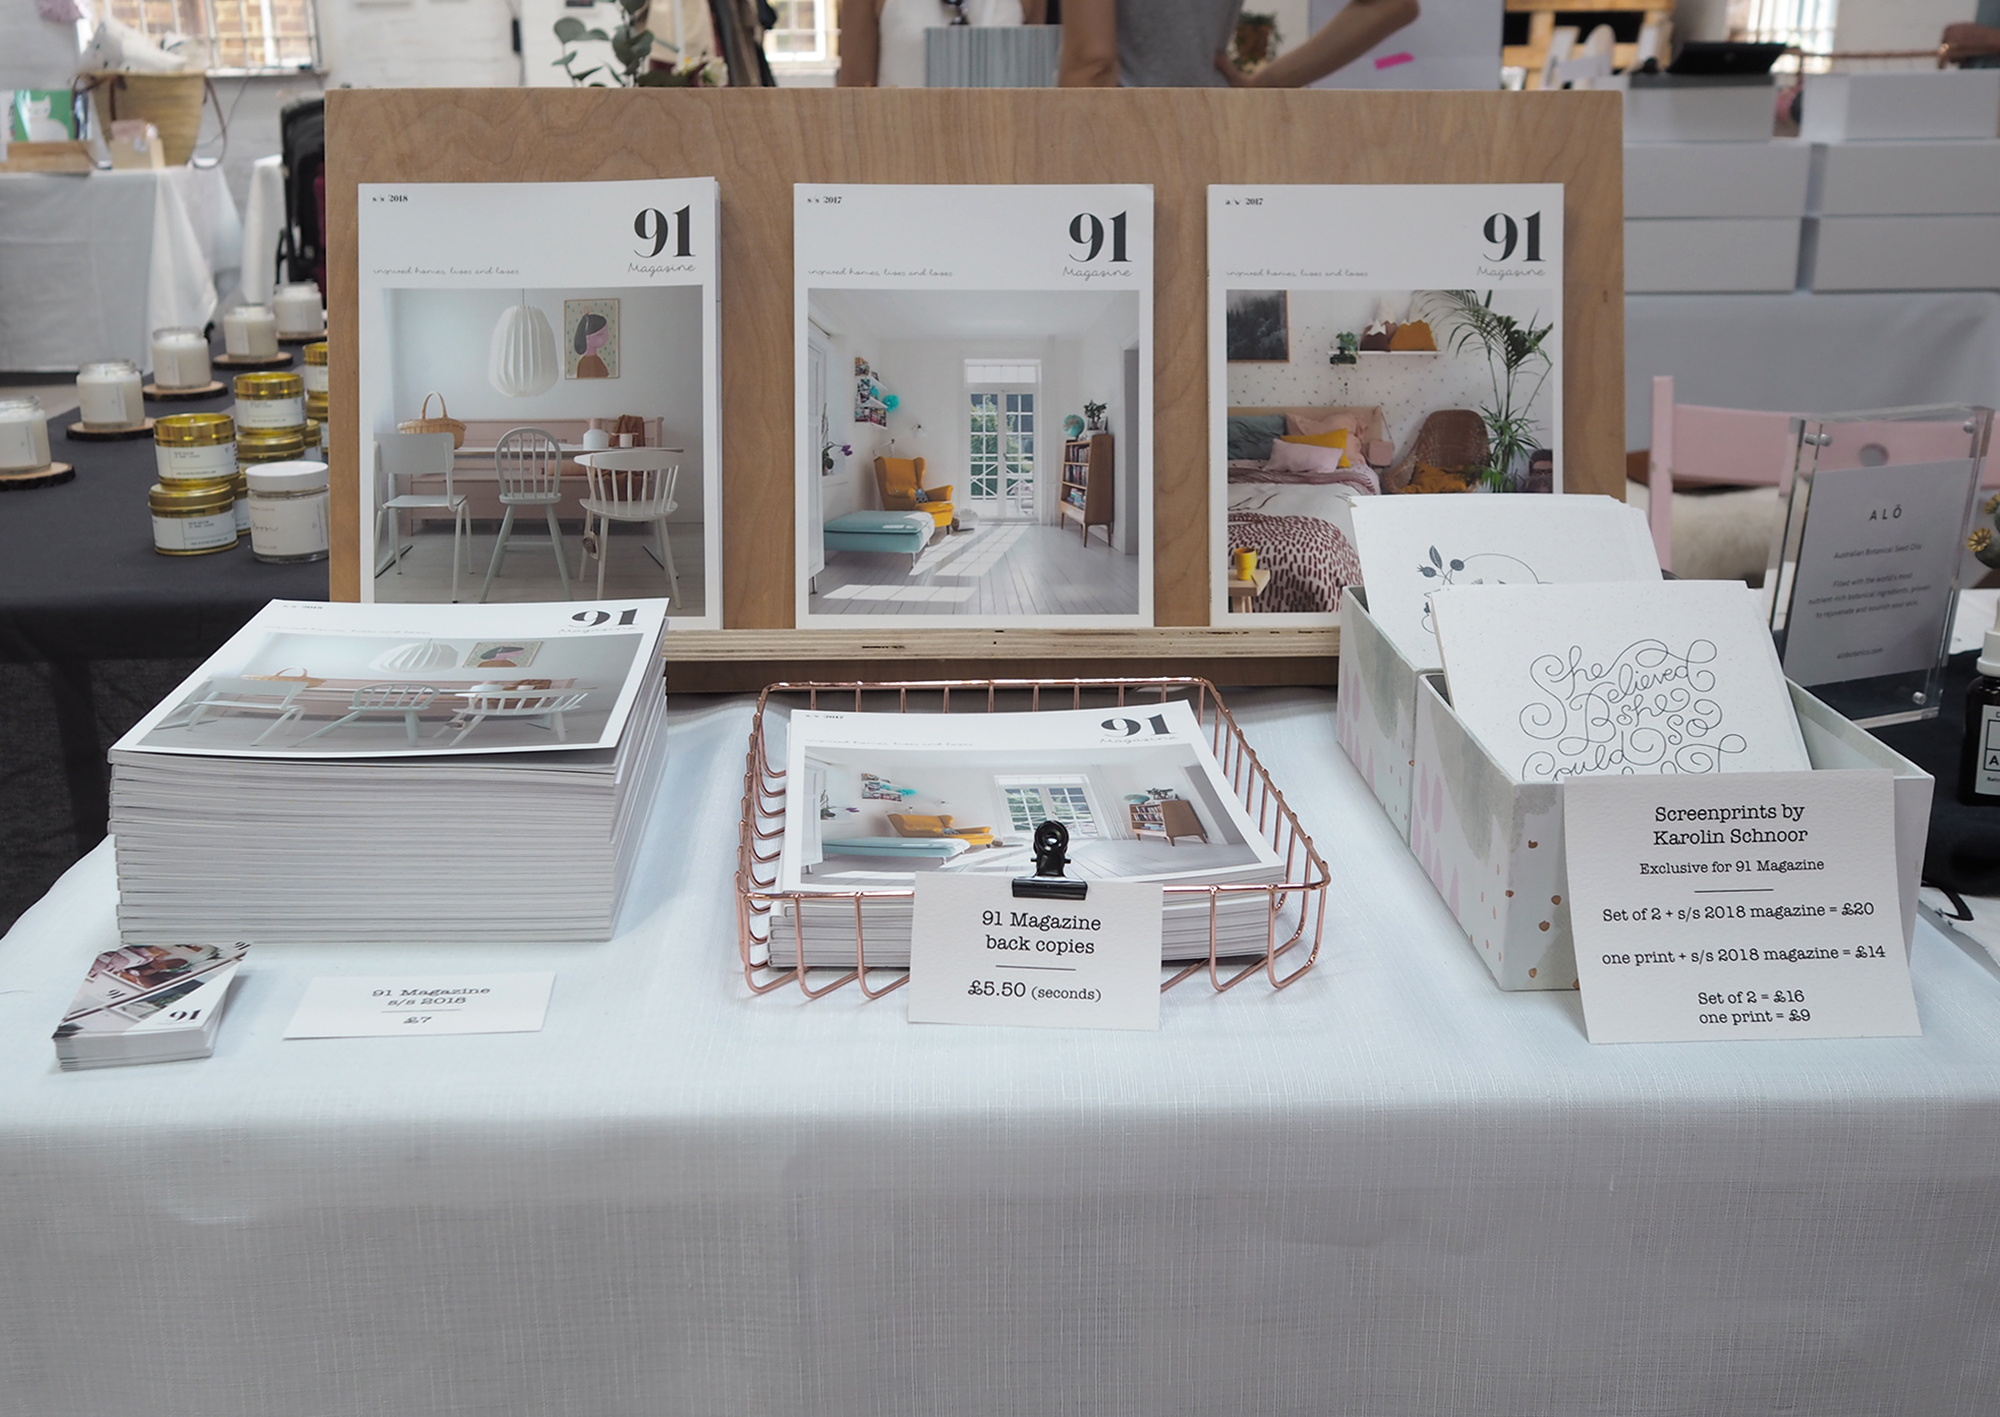 and 91, of course! you may spot that we were selling some back issues of the S/S 17 issue (middle one on the stand). These are seconds - so very slightly damaged or have a small printing defect. If you are interested in one of these please drop me a line. They are reduced to £5.50, but I have limited stock.   @91magazine